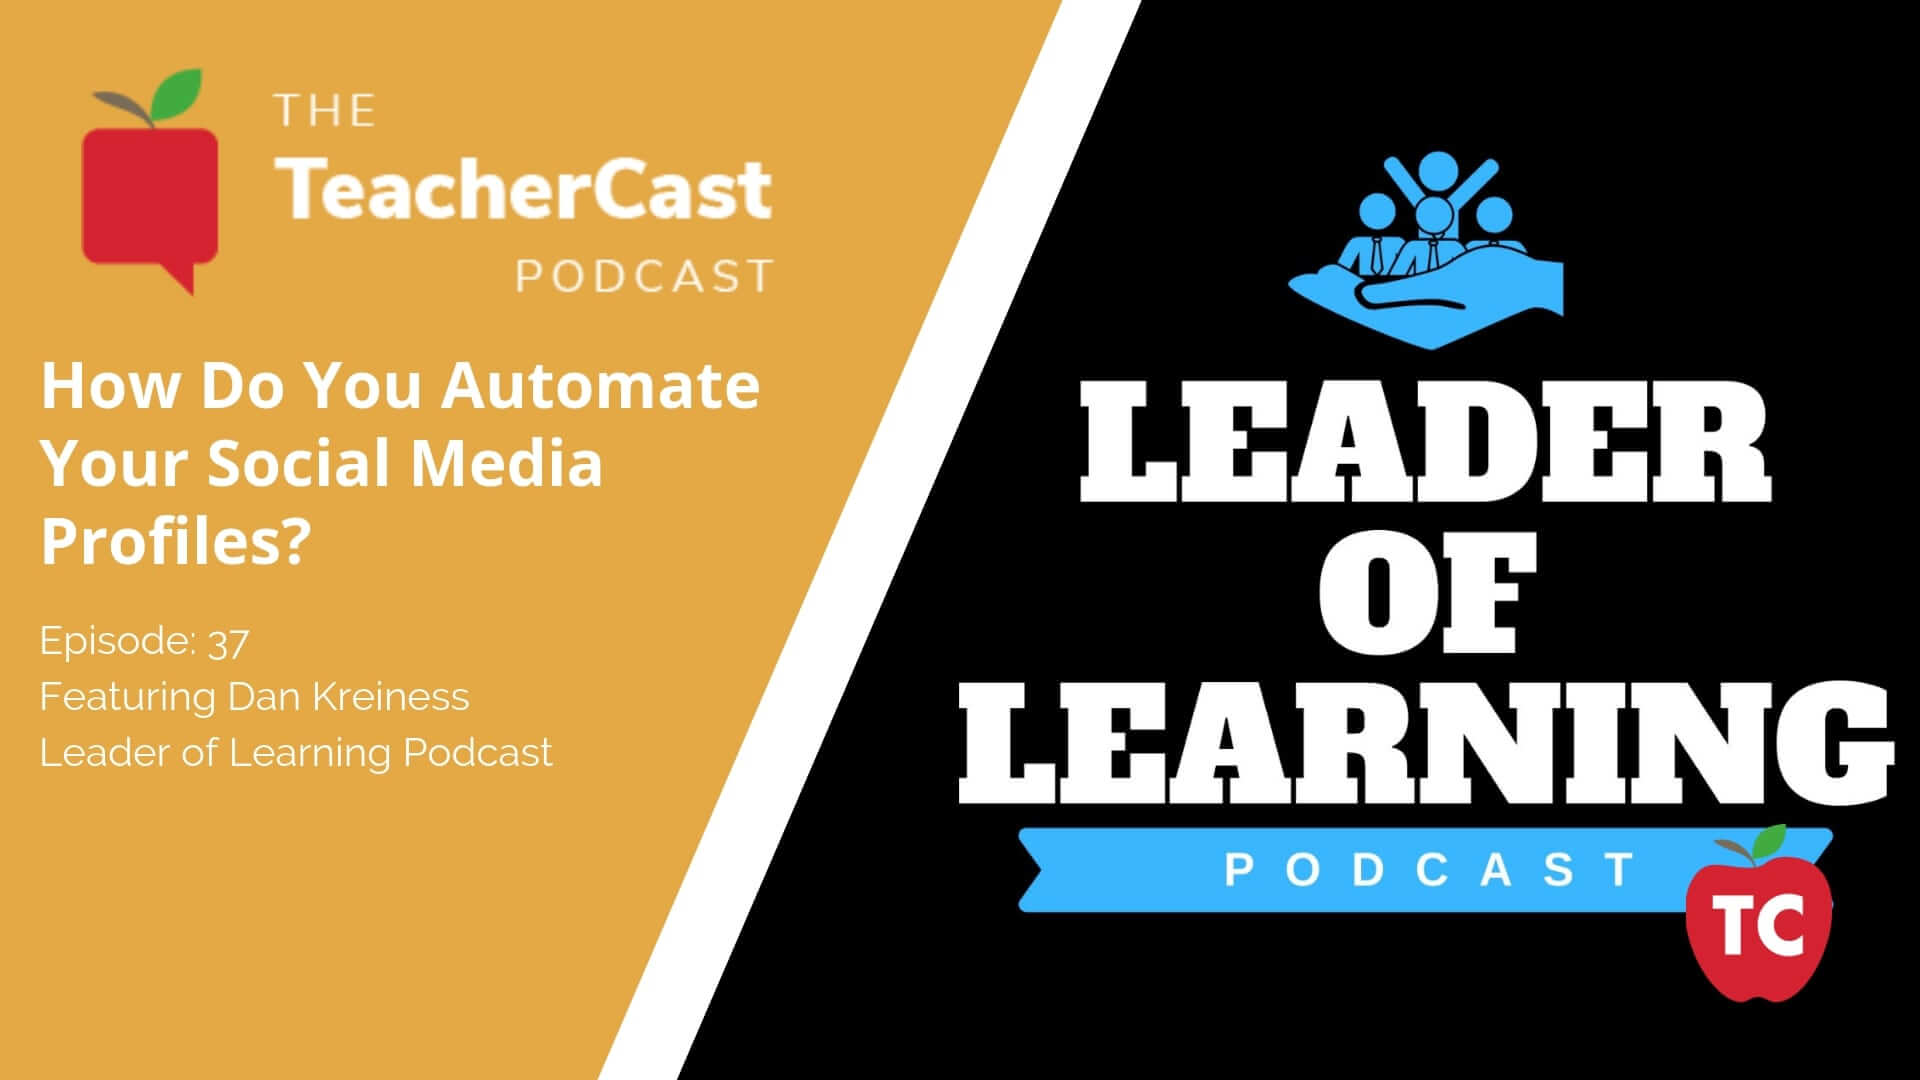 Dan Kreiness: Leader of Learning Podcast